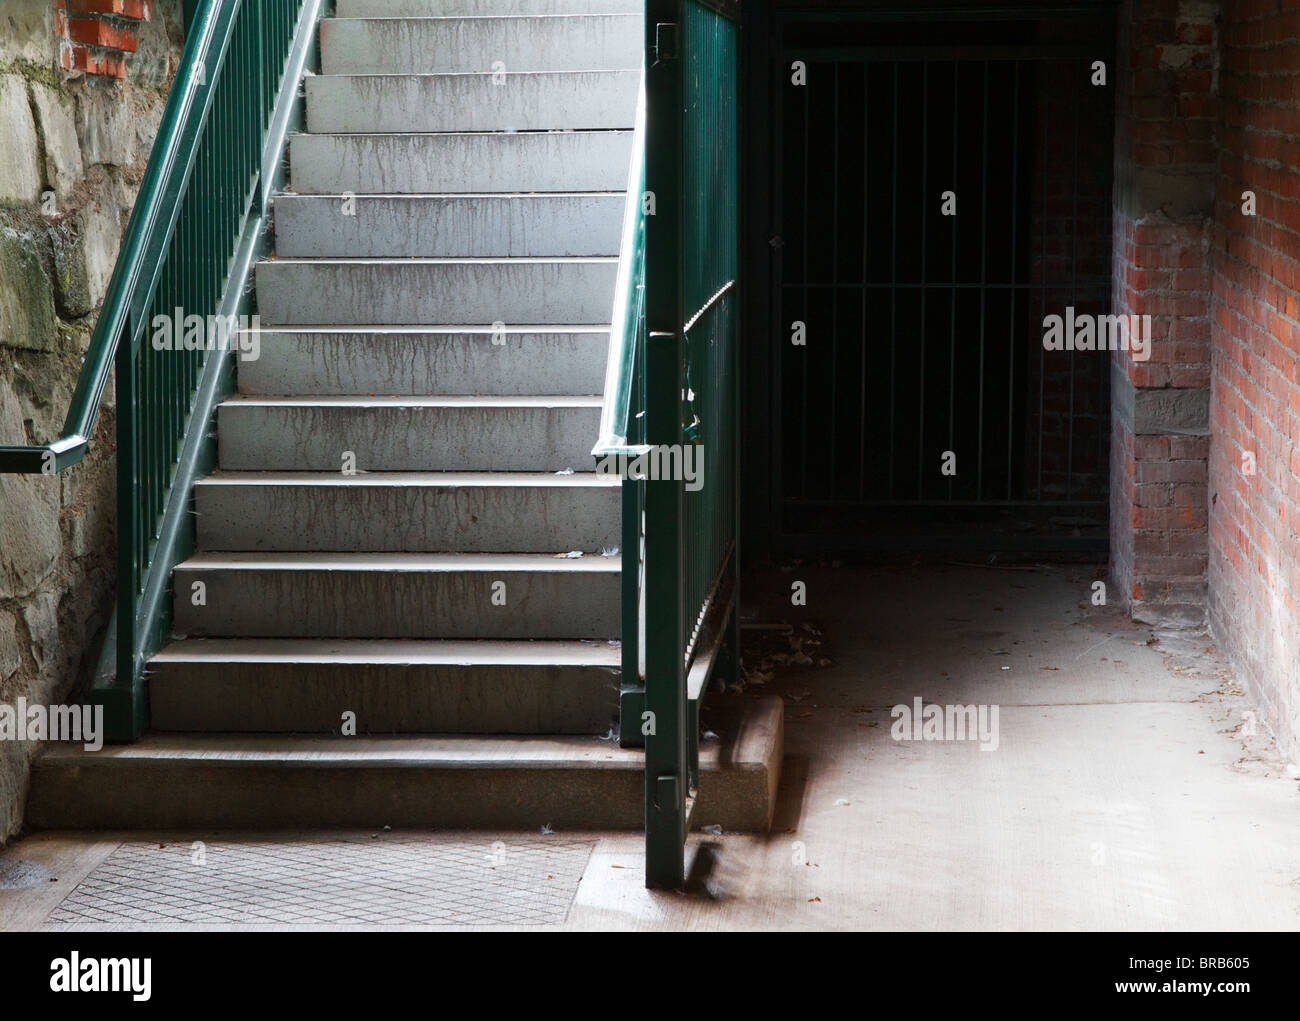 Green railing City Cellar Stairs leading down to stone and brick lower level - Stock Image